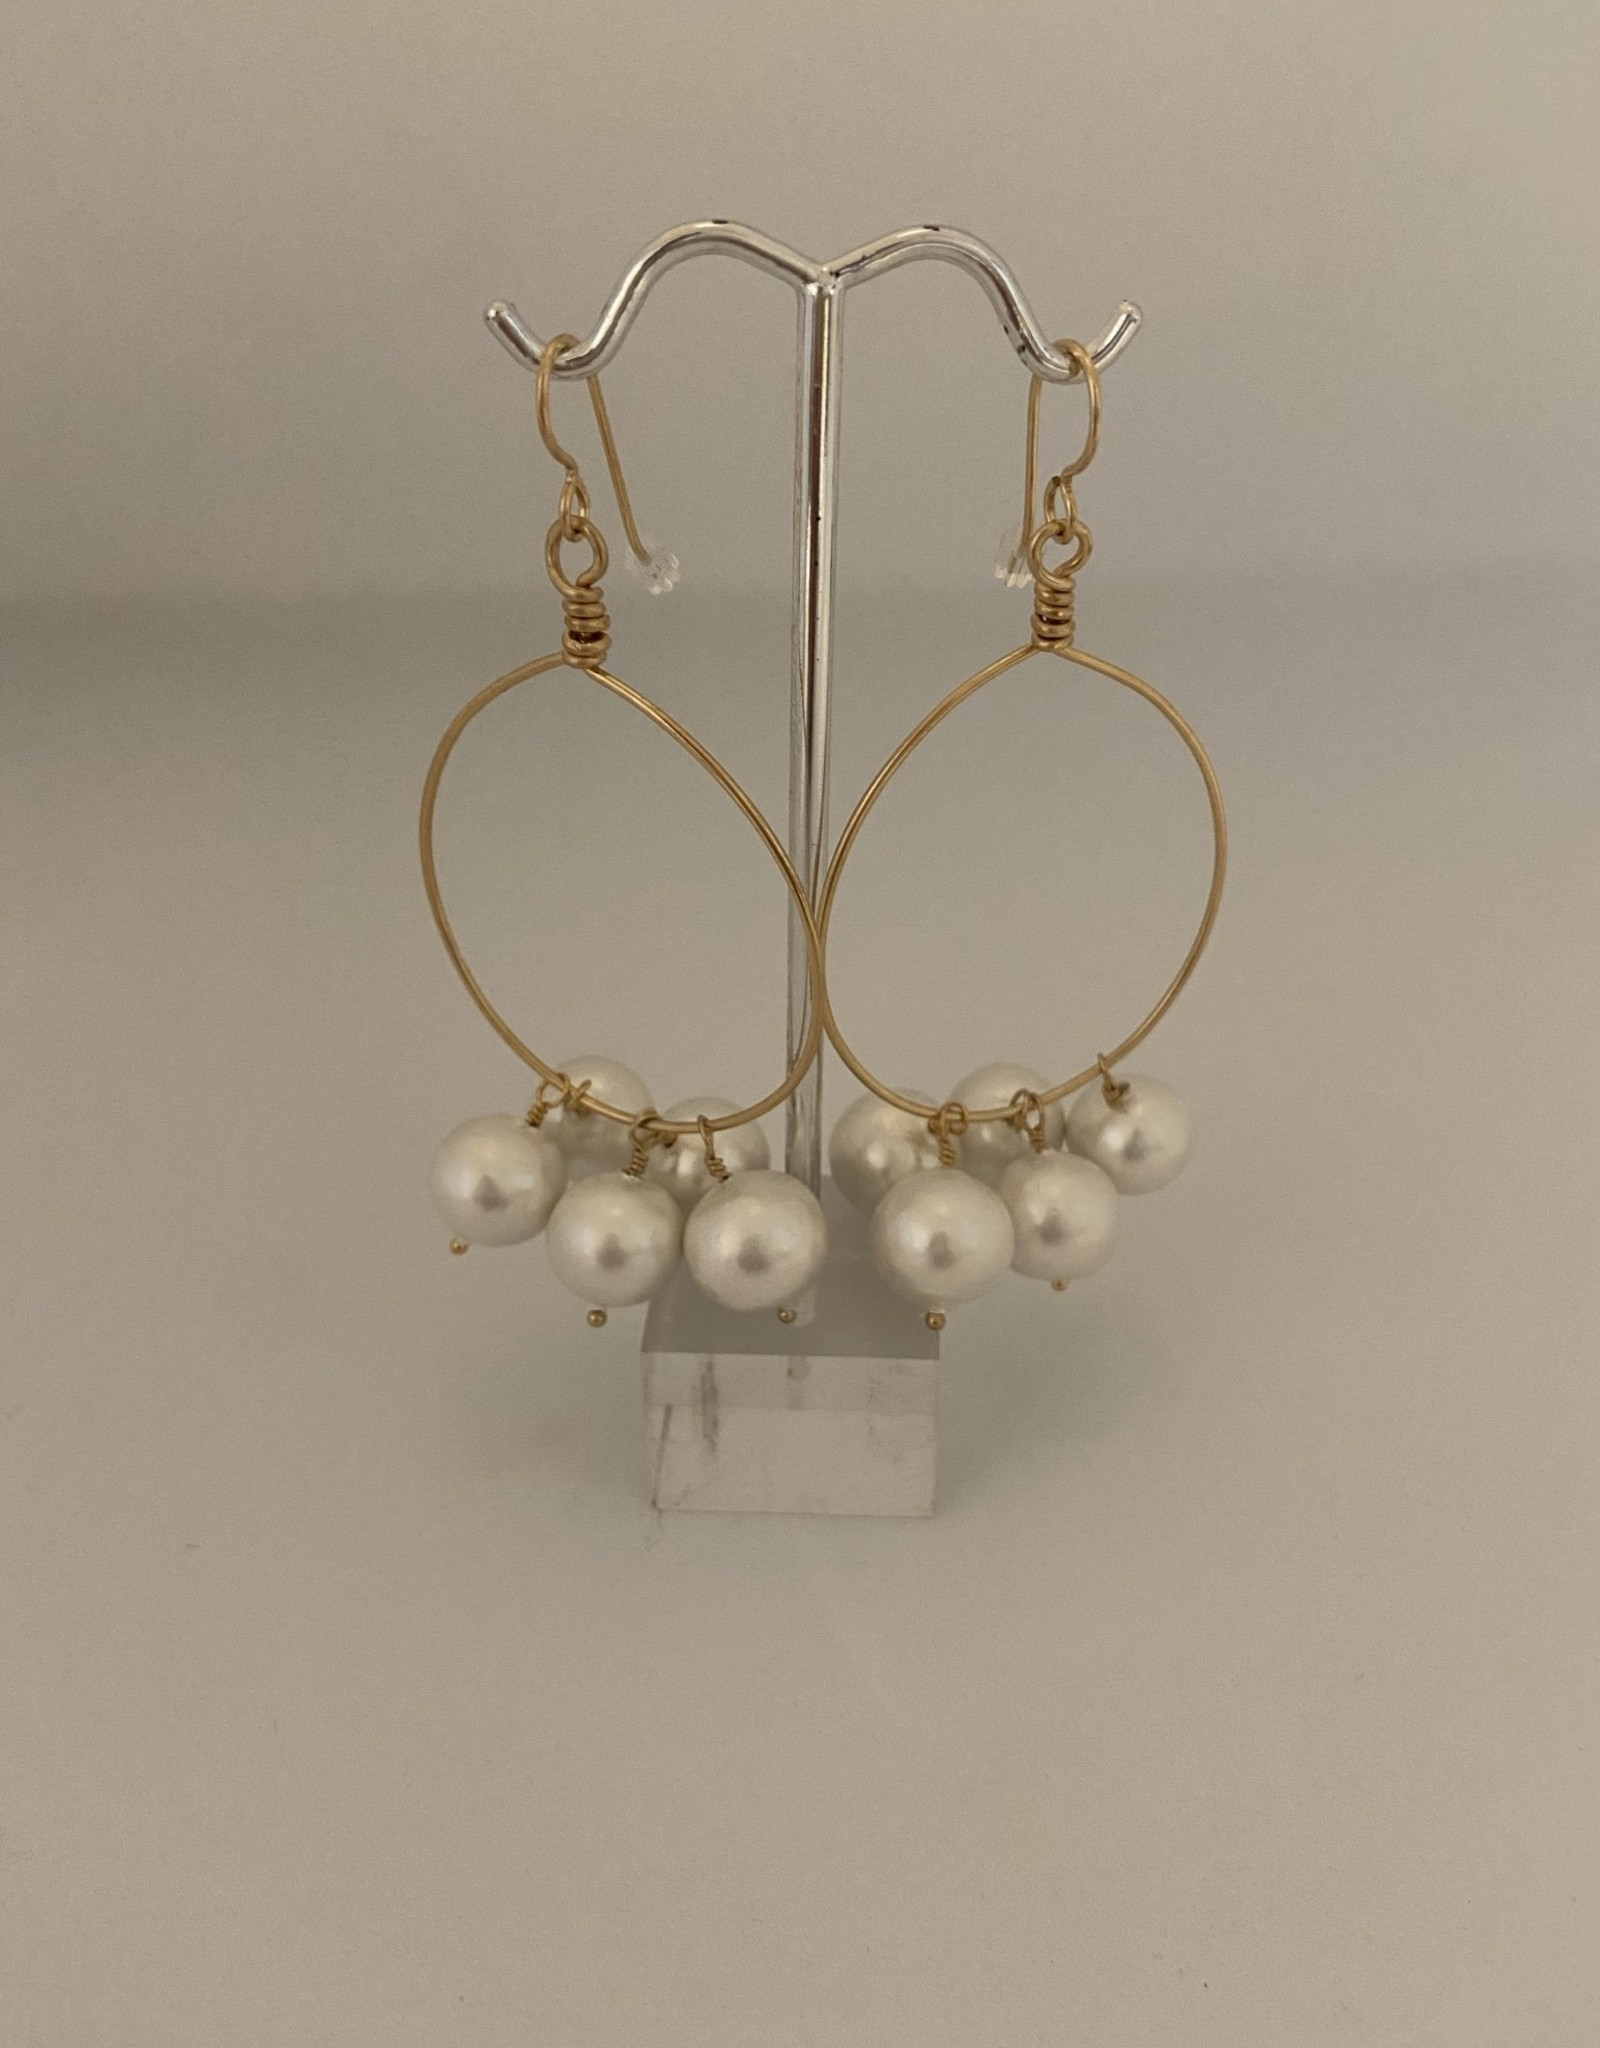 Wendy Perry Designs Cristina Cotton Ball Earrings